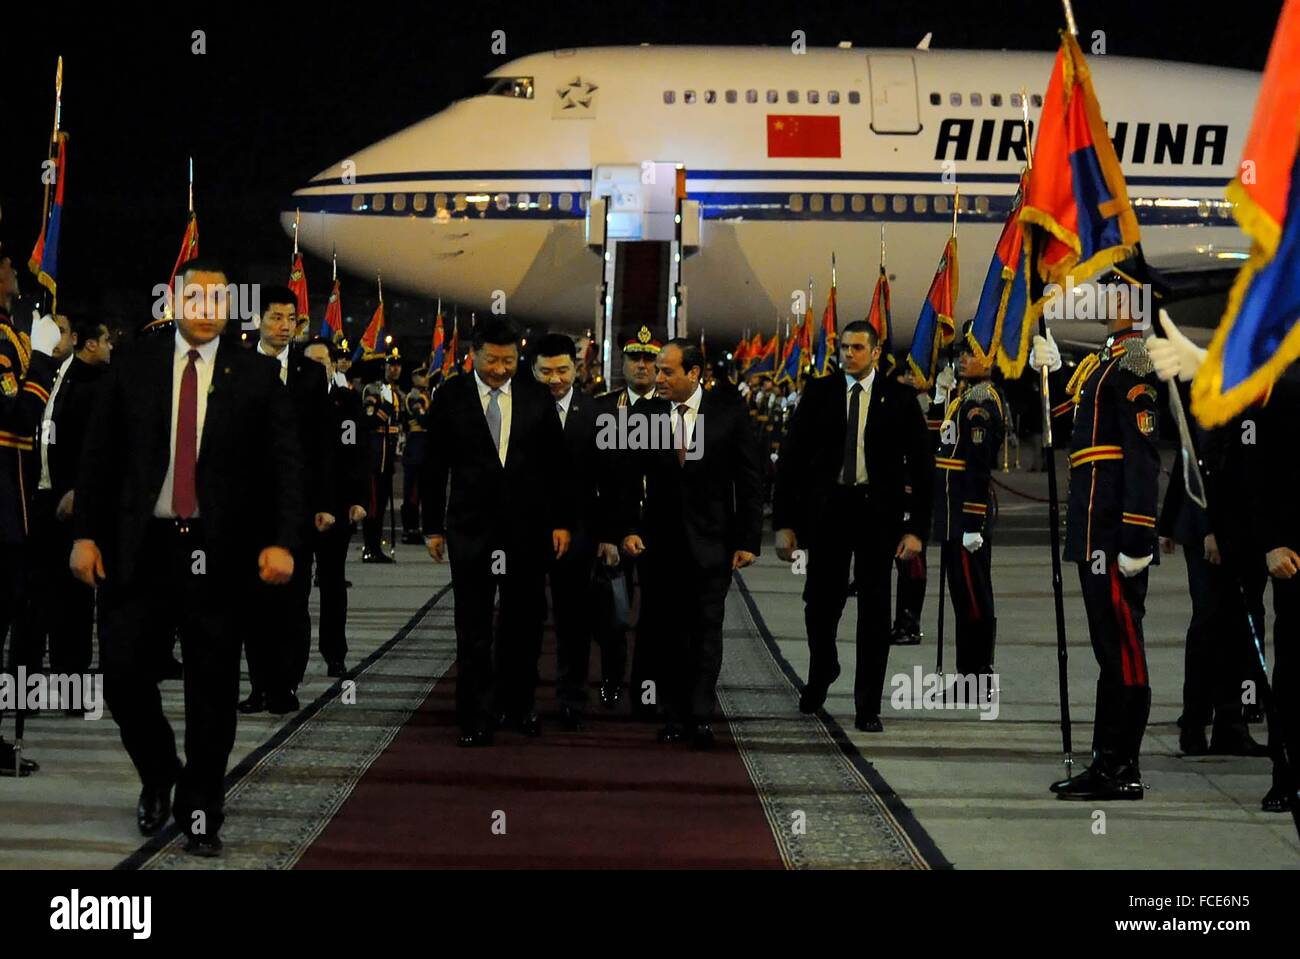 Chinese President Xi Jinping arrived in Cairo on Wednesday for a two-day visit to Egypt to discuss bilateralcooperation. - Stock Image